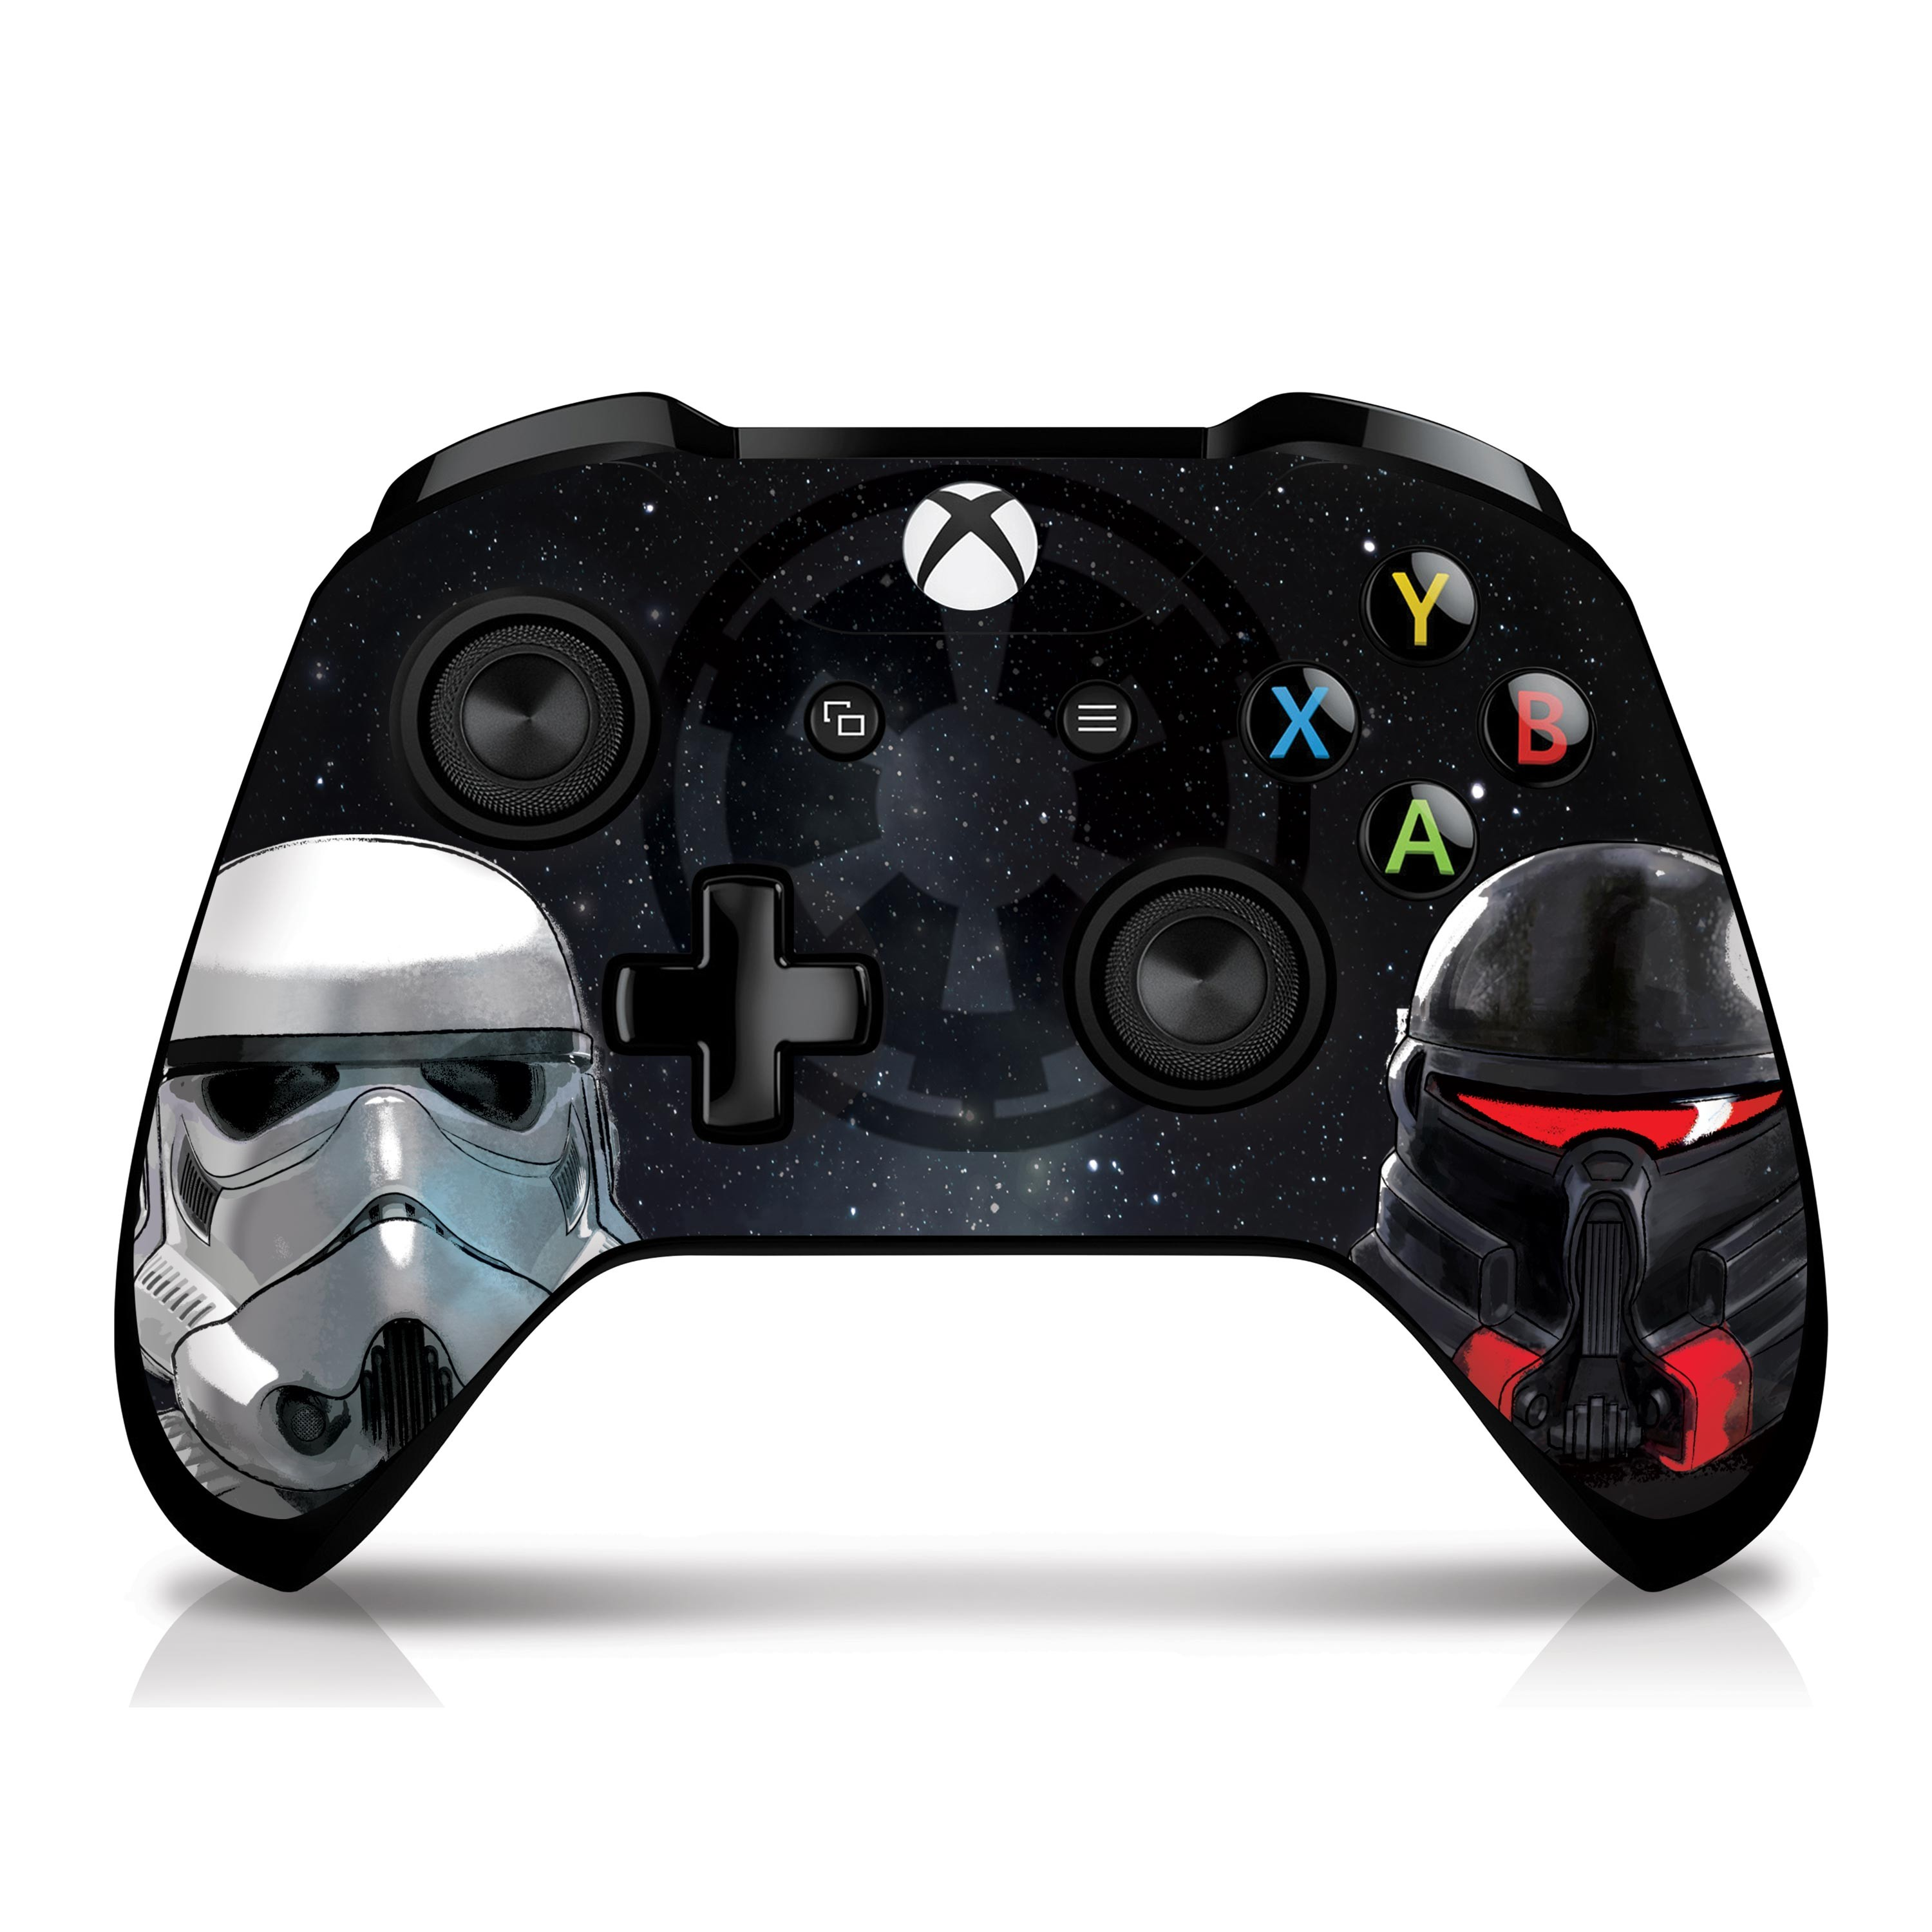 Xbox One X Console and Controller Skin with a Star Wars Jedi Fallen Order Empire Troopers Design, Image 1